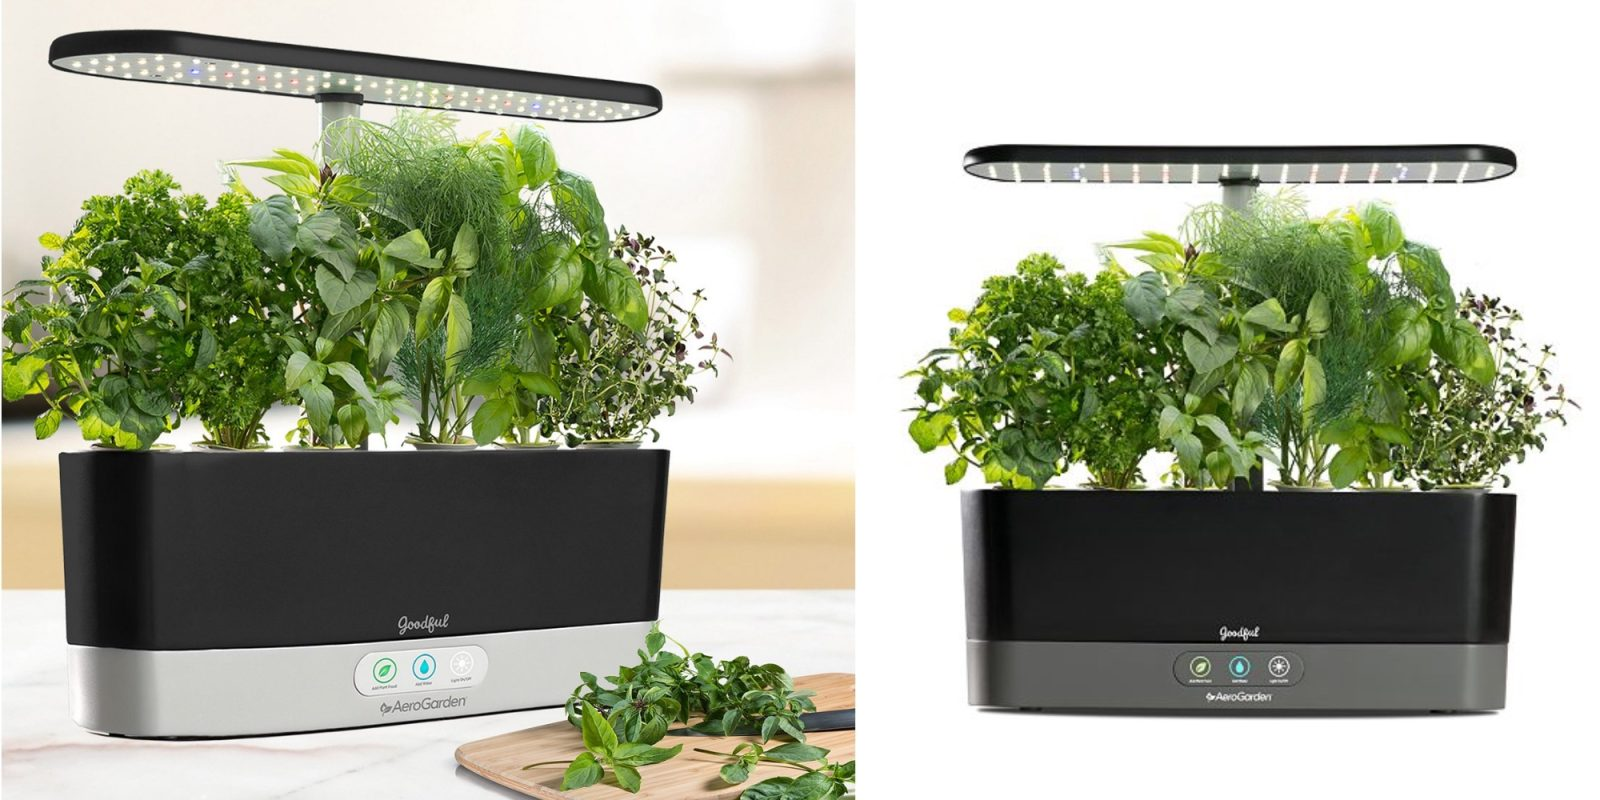 Save 60% on AeroGarden's Harvest Slim Countertop Garden at a new low of $76